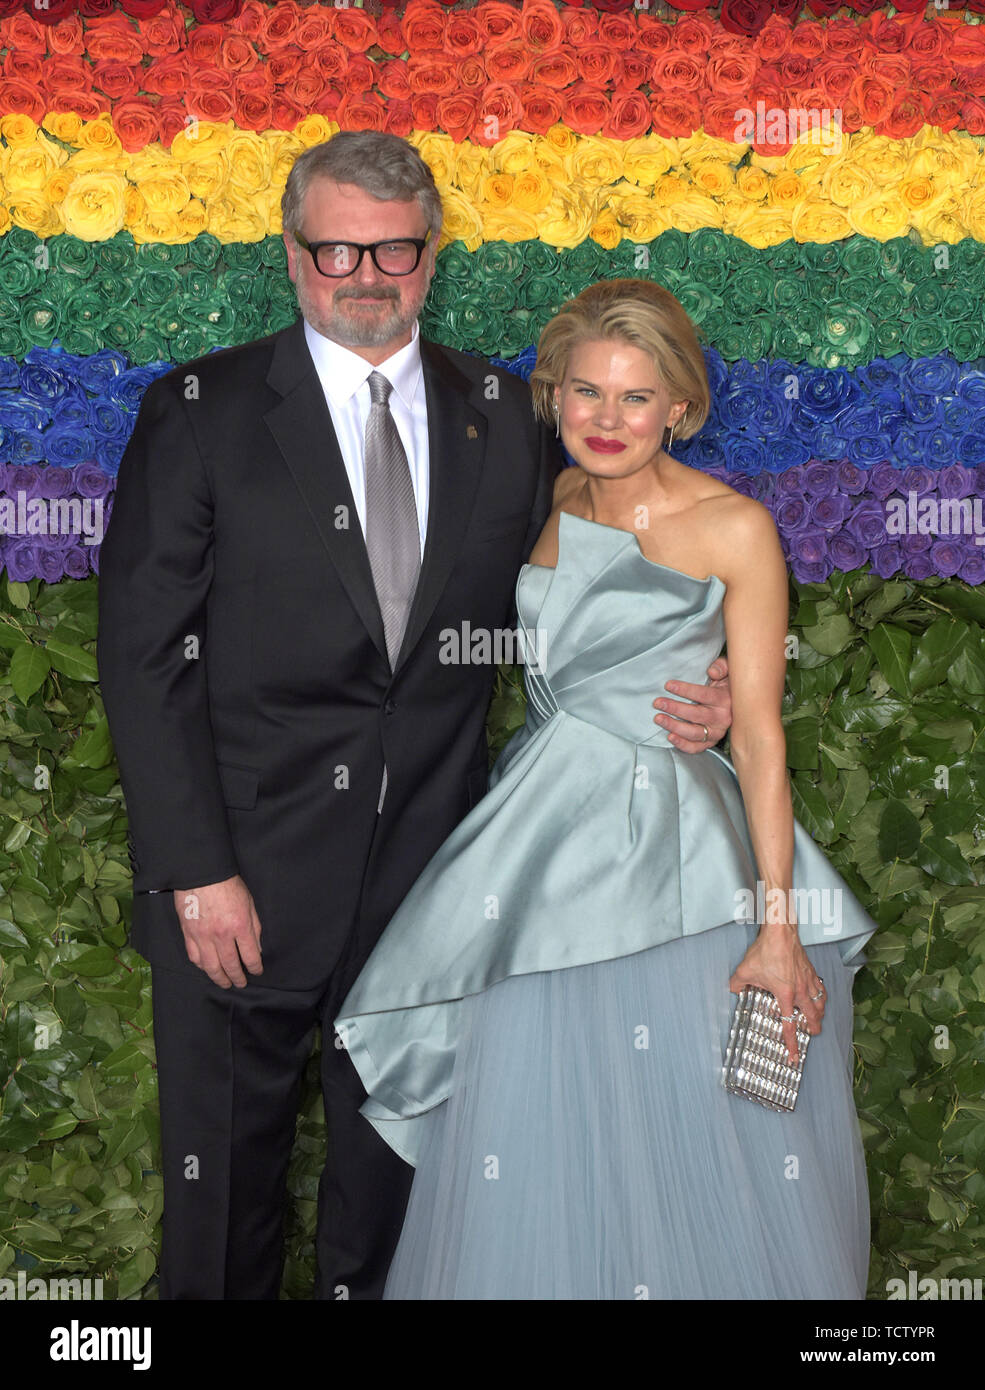 NEW YORK, NEW YORK - JUNE 09: Celia Keenan-Bolger attends the 73rd Annual Tony Awards at Radio City Music Hall on June 09, 2019 in New York City. Photo: Jeremy Smith/imageSPACE/MediaPunch - Stock Image